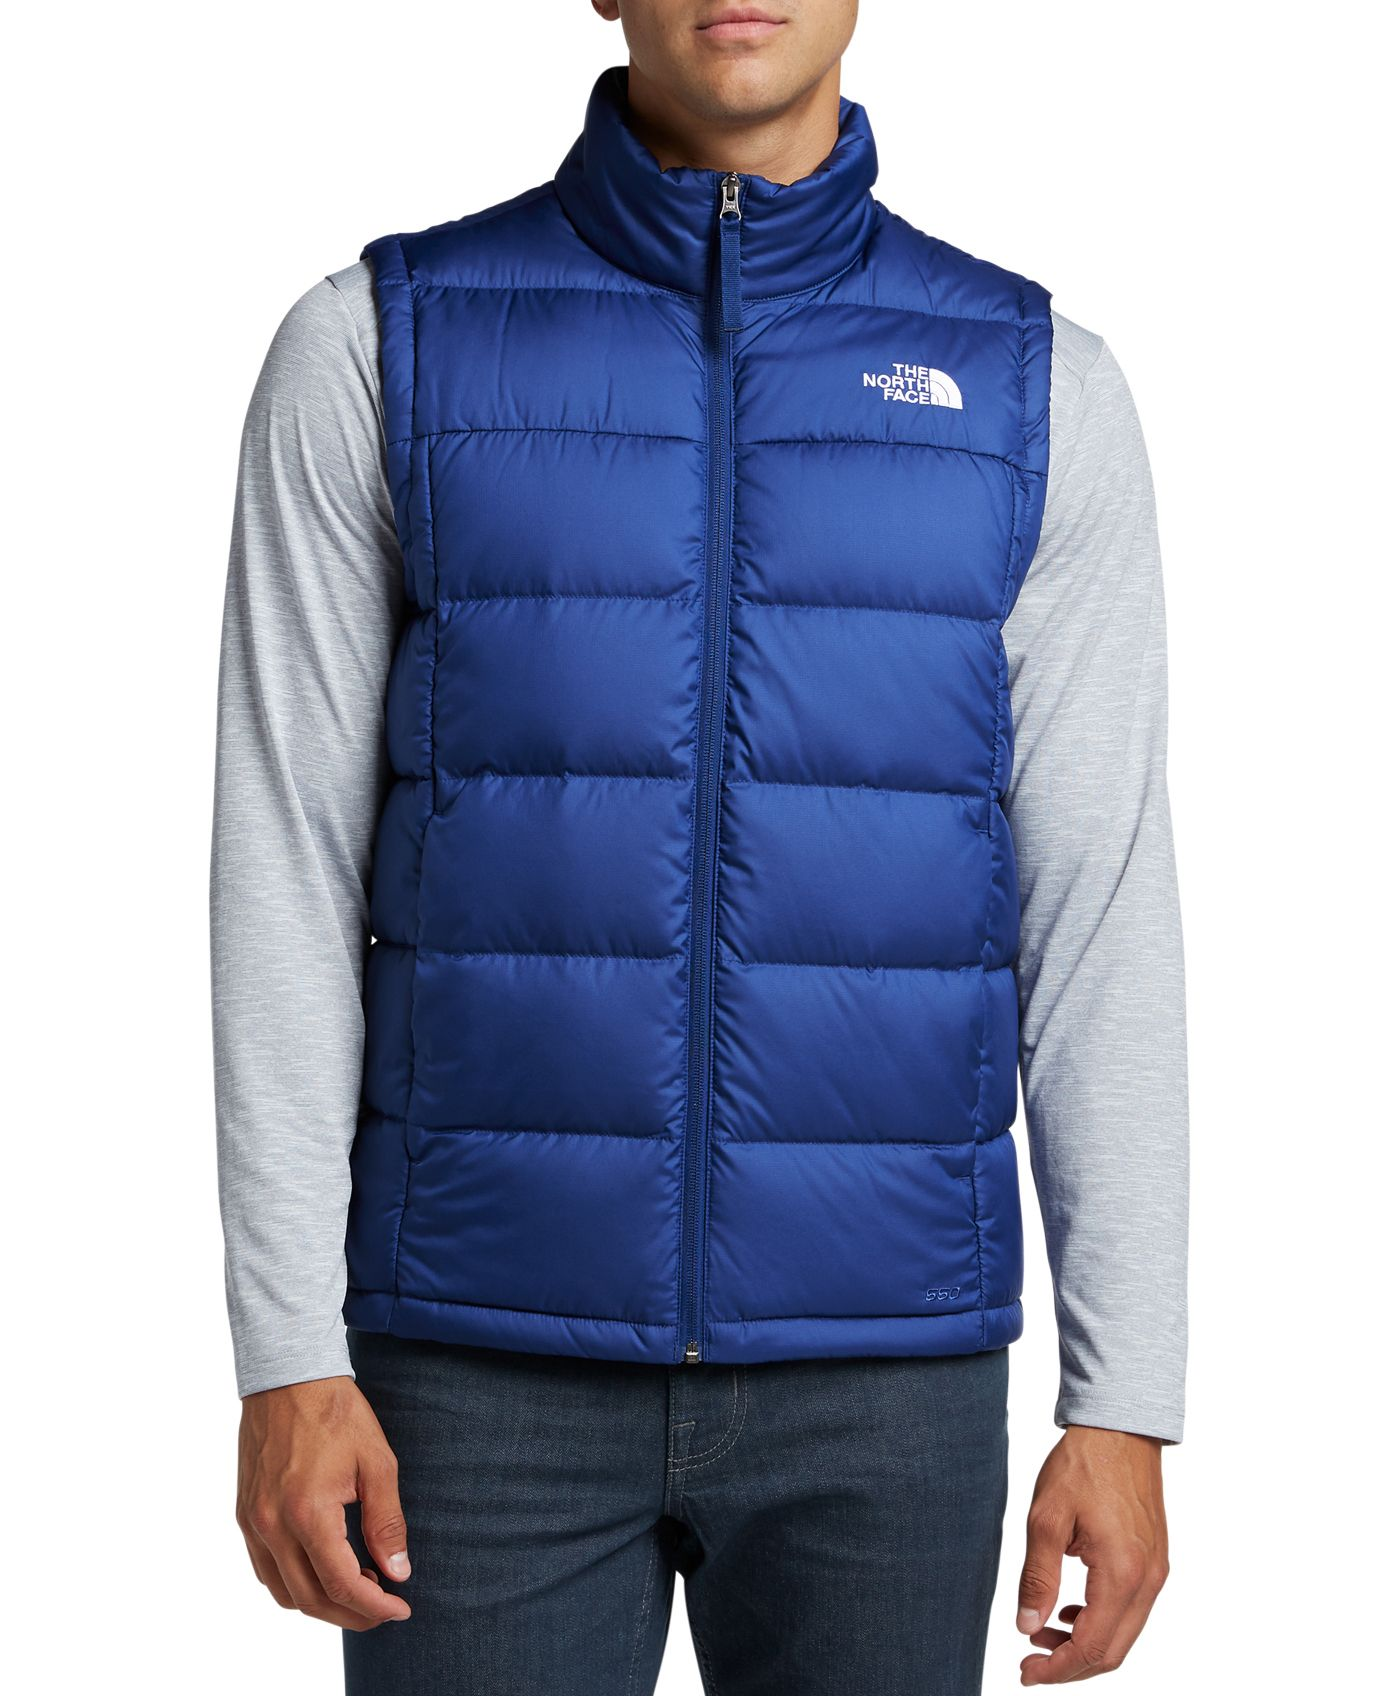 The North Face Men's Alpz 2.0 Down Vest